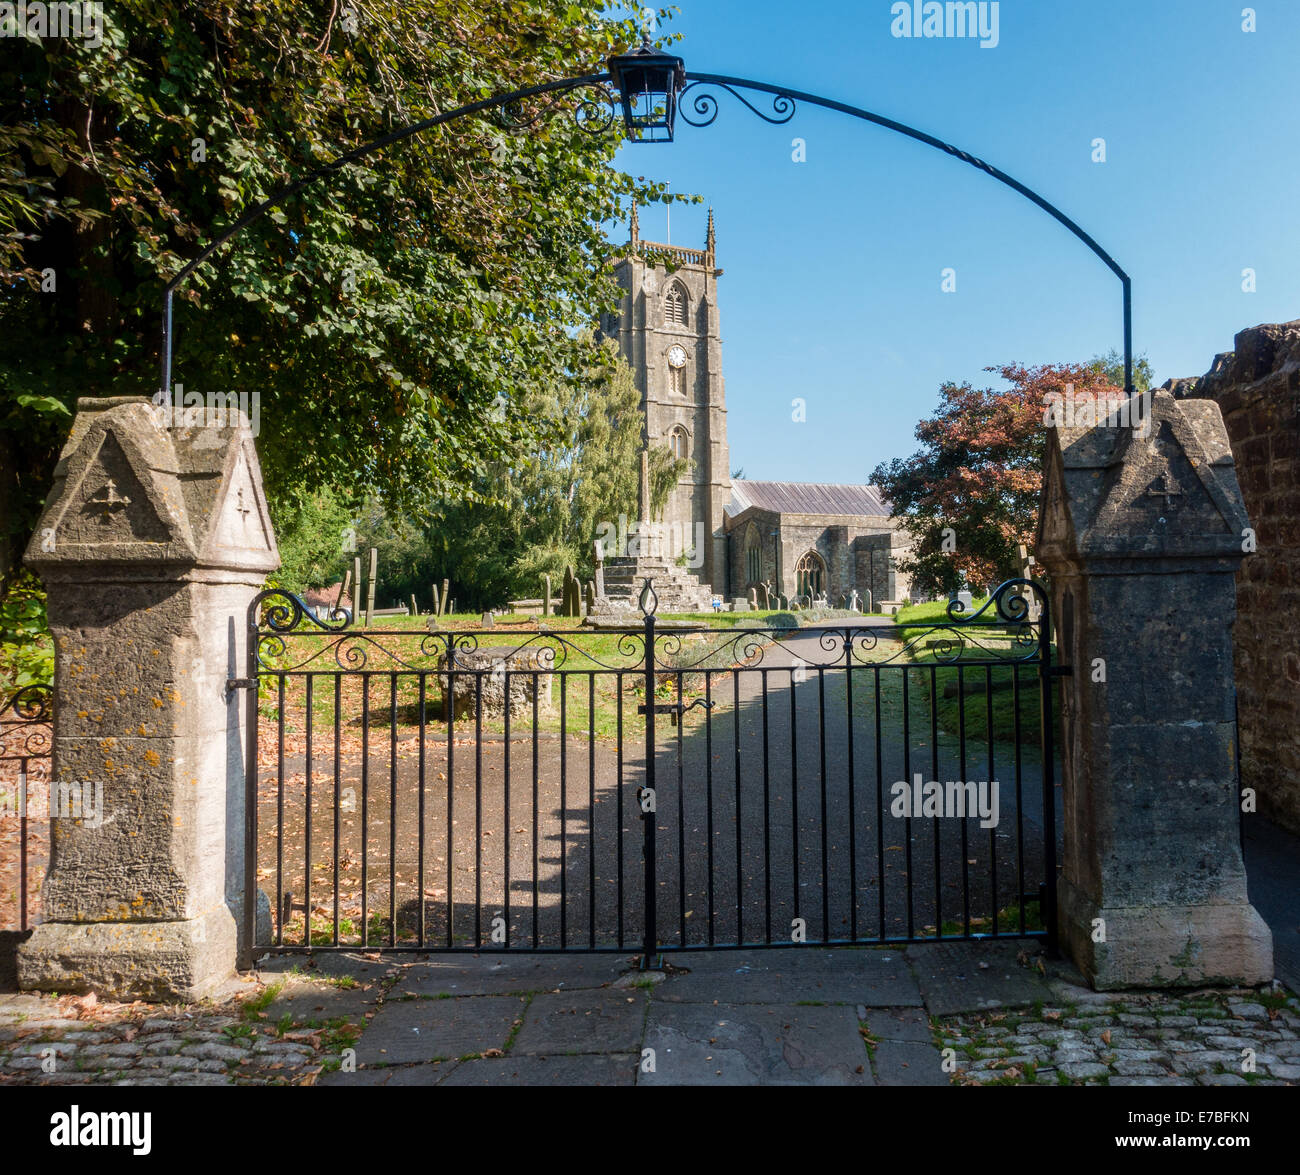 Iron arched entrance gates to St Andrew's church in the village of Chew Magna Somerset UK - Stock Image